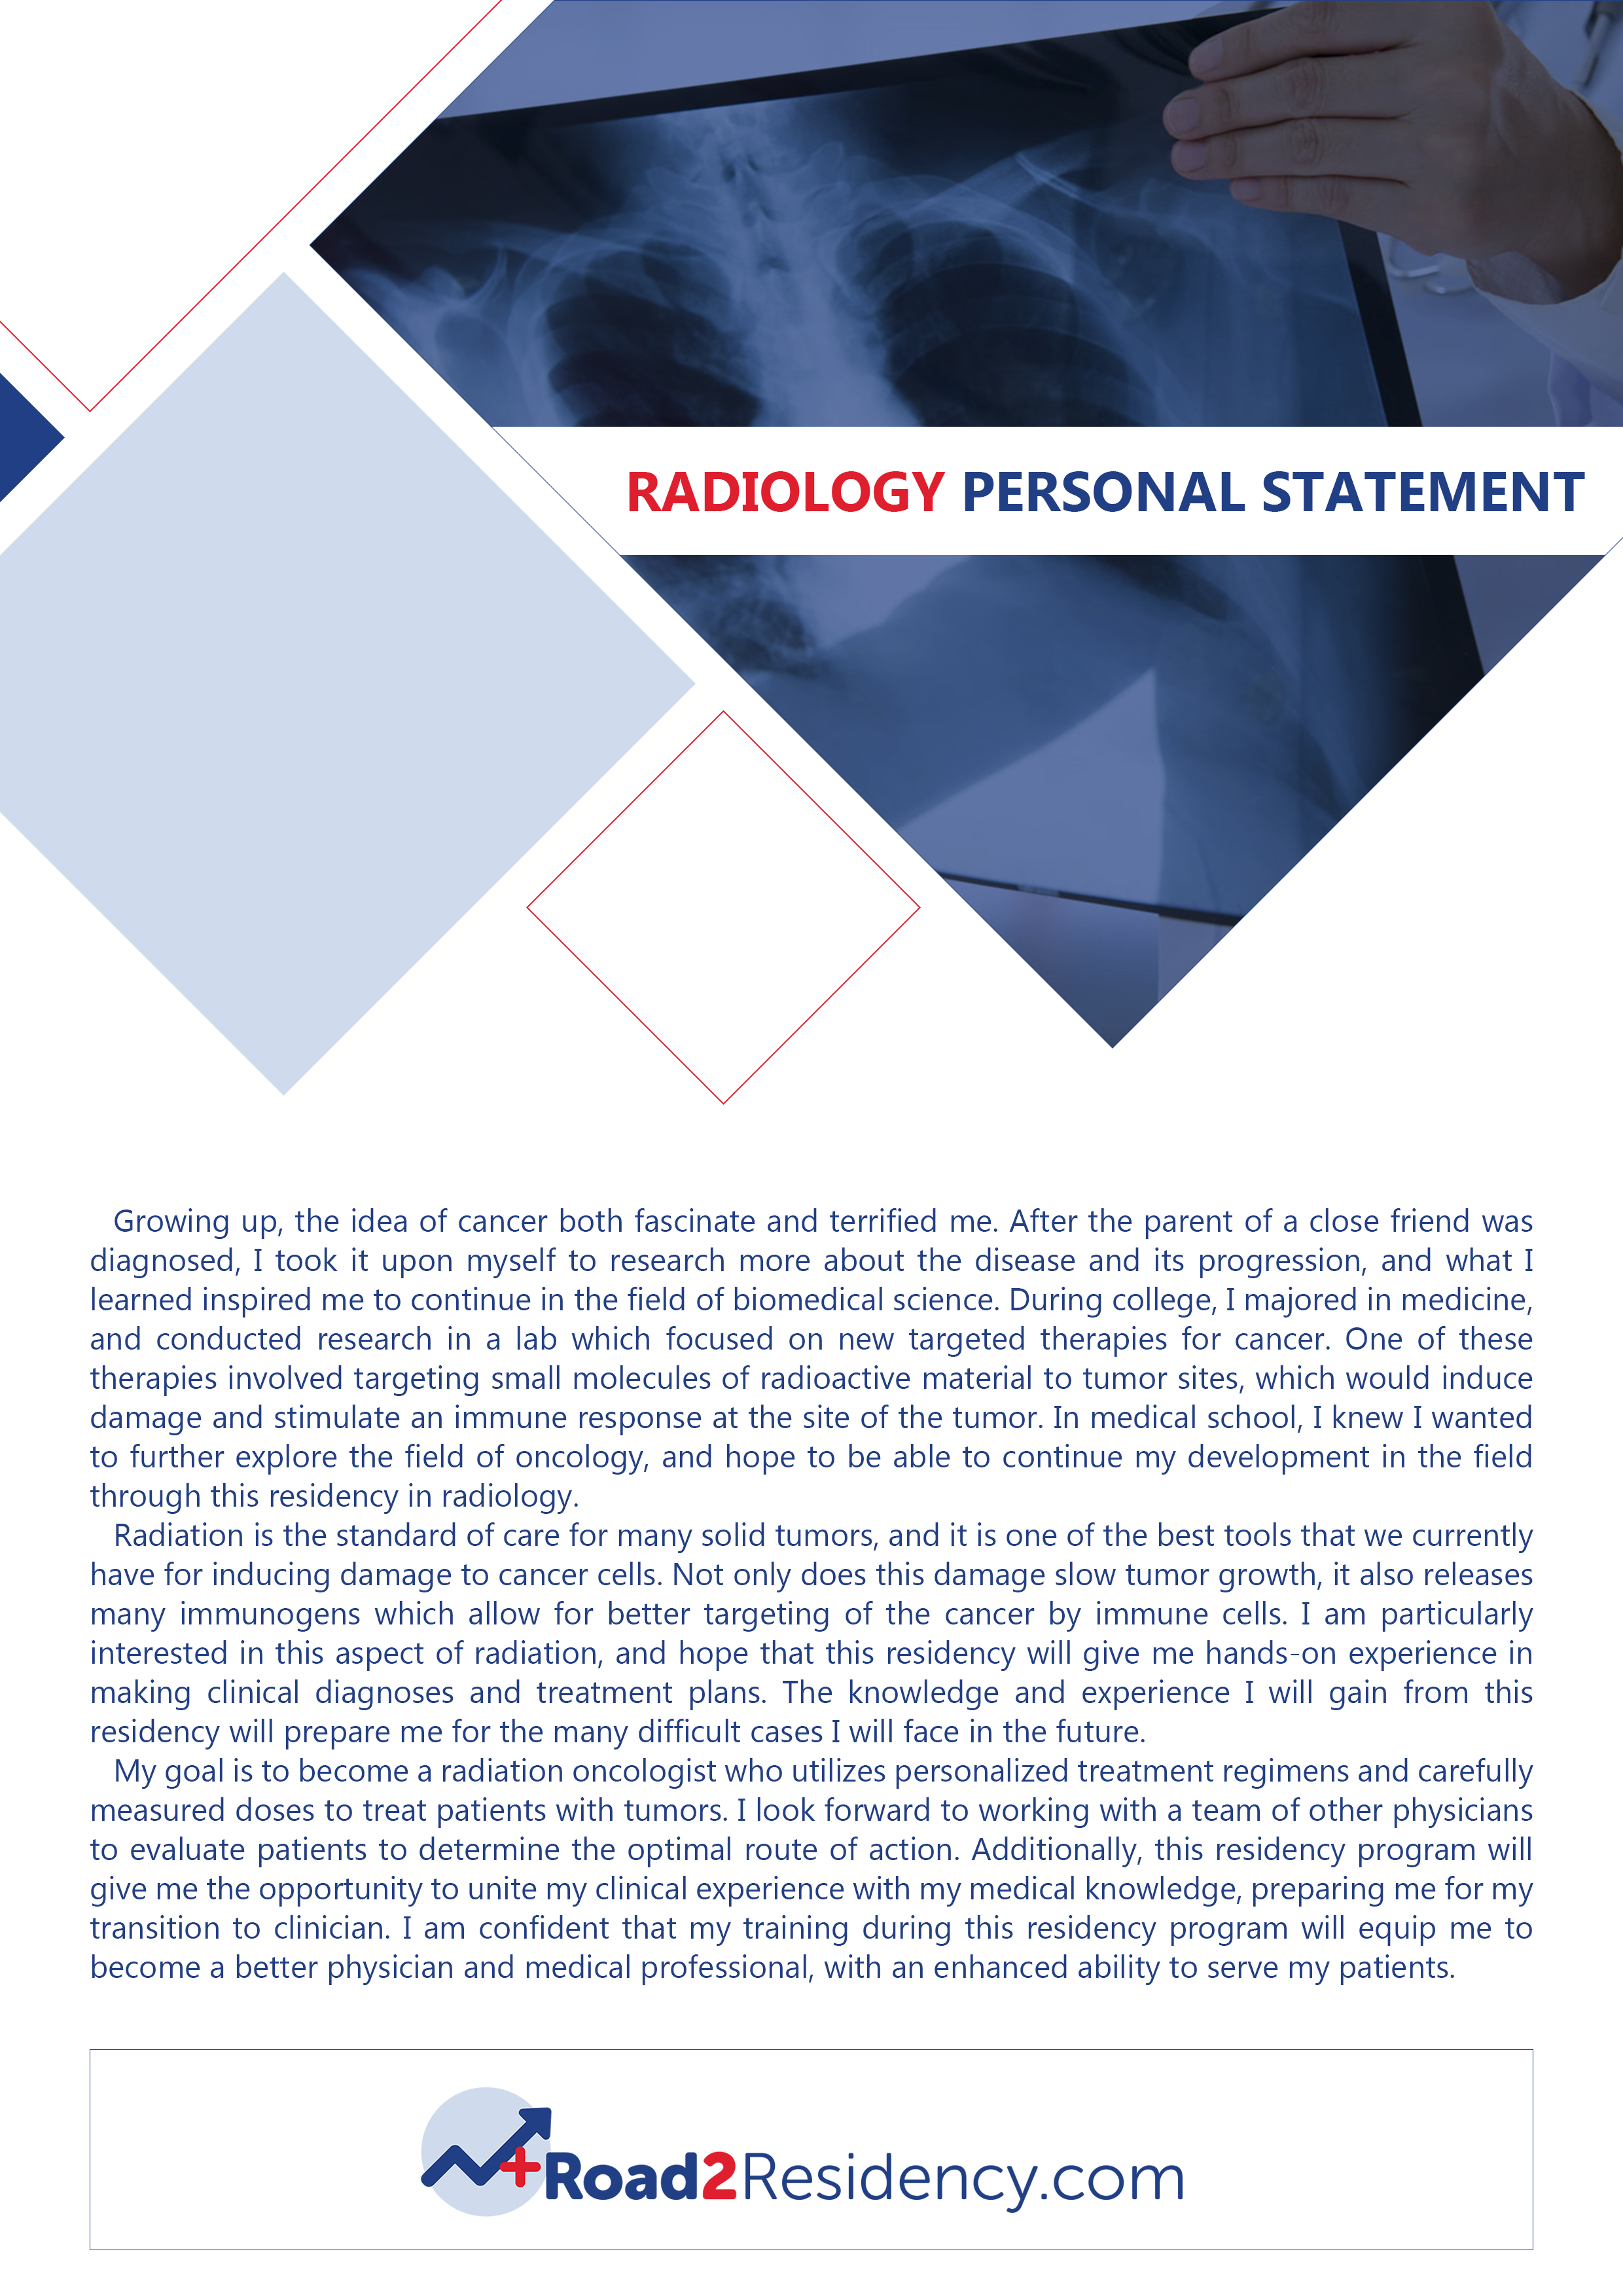 Pin By Road To Residency Samples On Personal Statement For Radiology